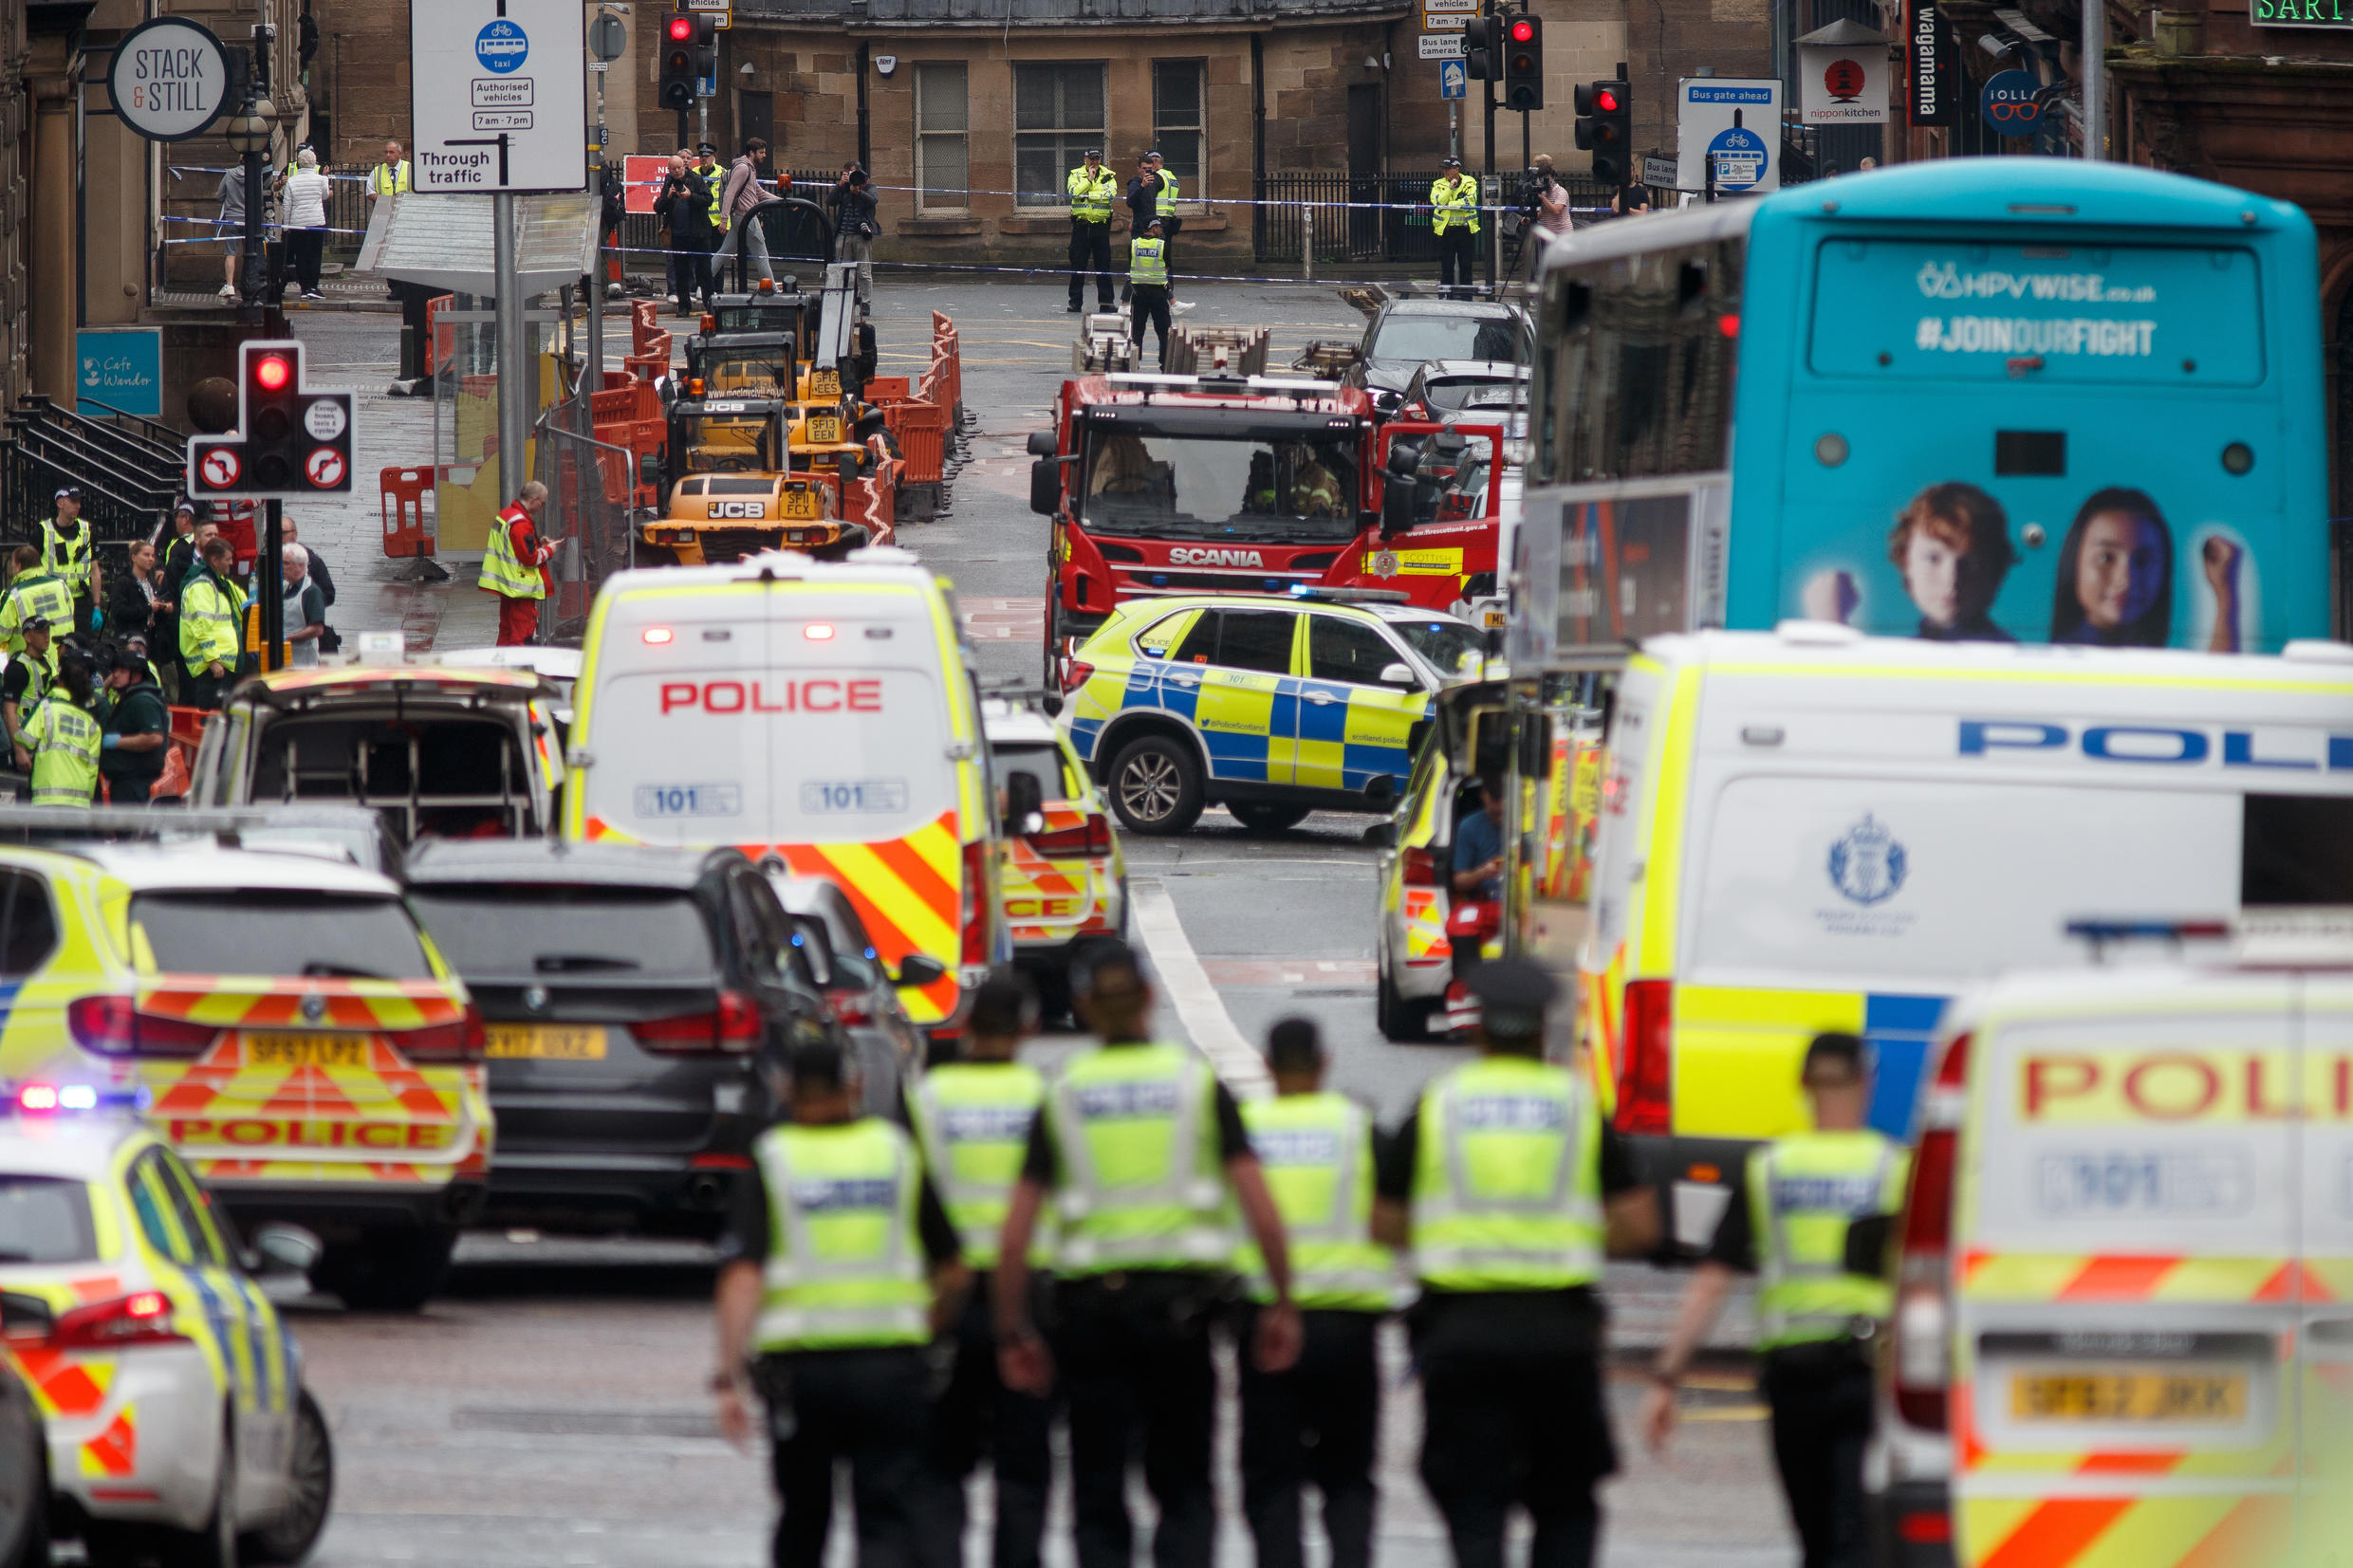 Police and emergency services respond at the scene of a fatal stabbing incident in central Glasgow on June 26, 2020.